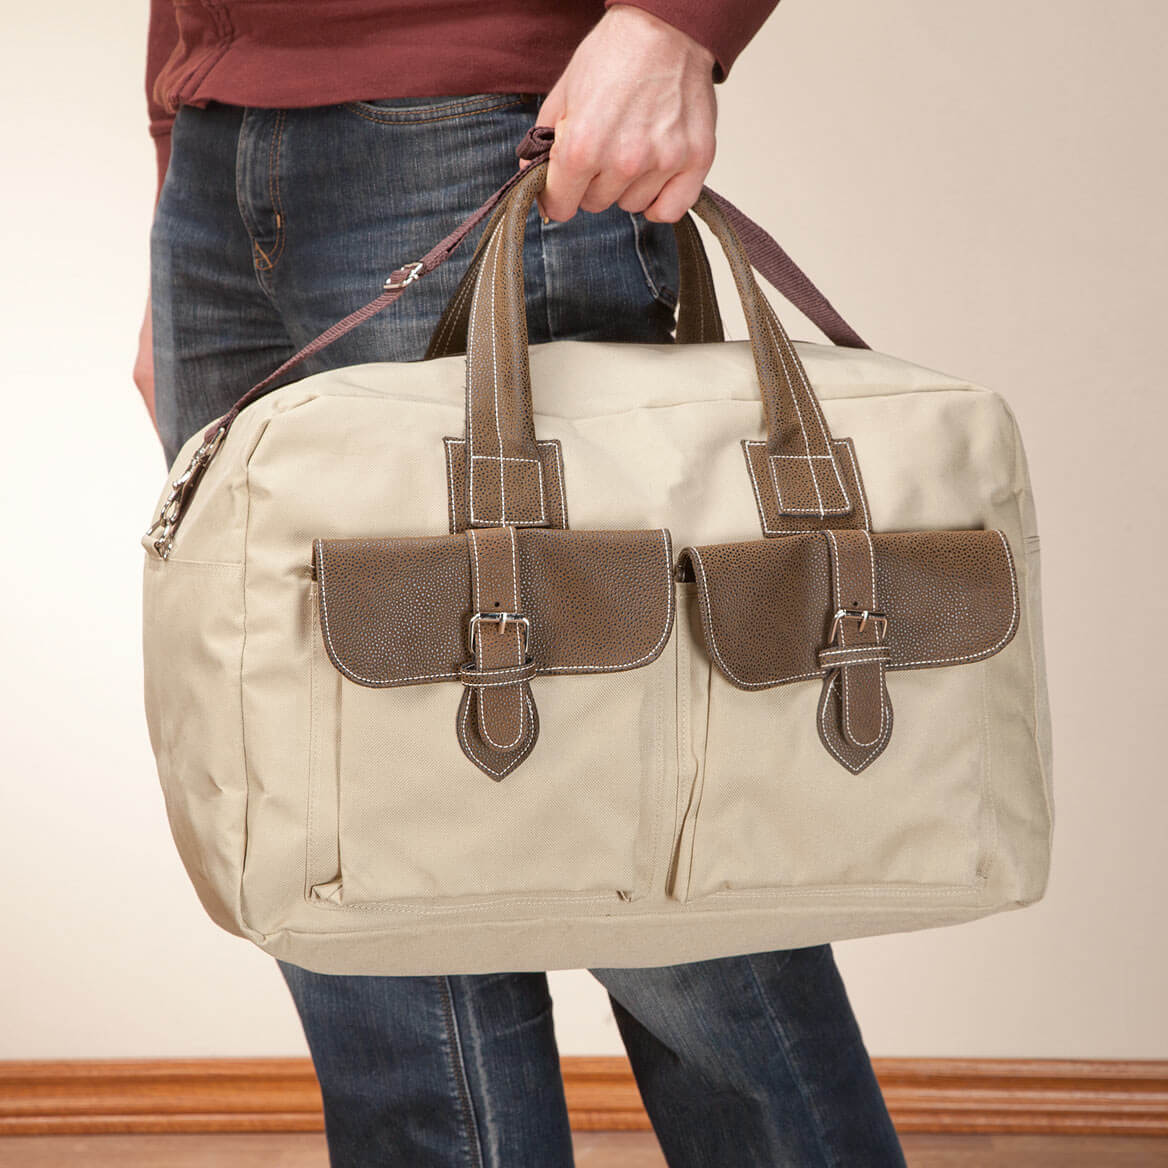 Personalized Duffle Bag-359494